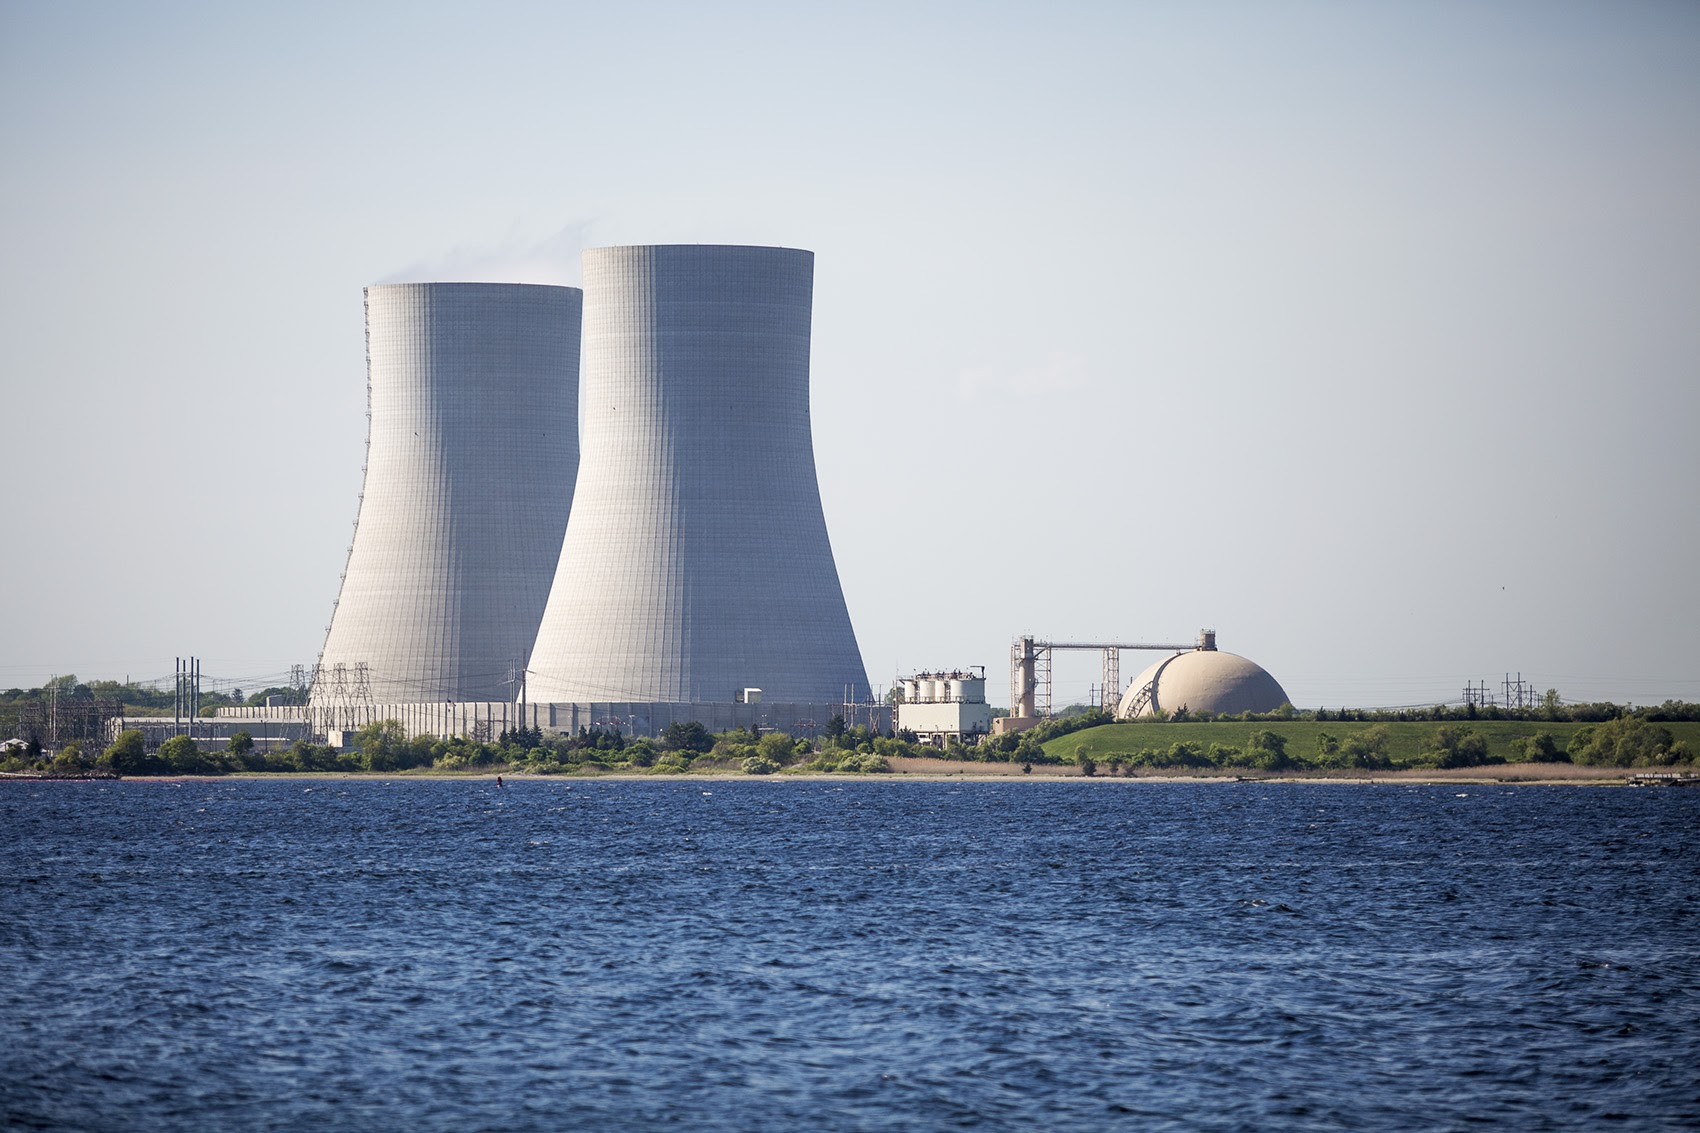 In Somerset Last Coal Burning Power Plant In Mass Shuts Down